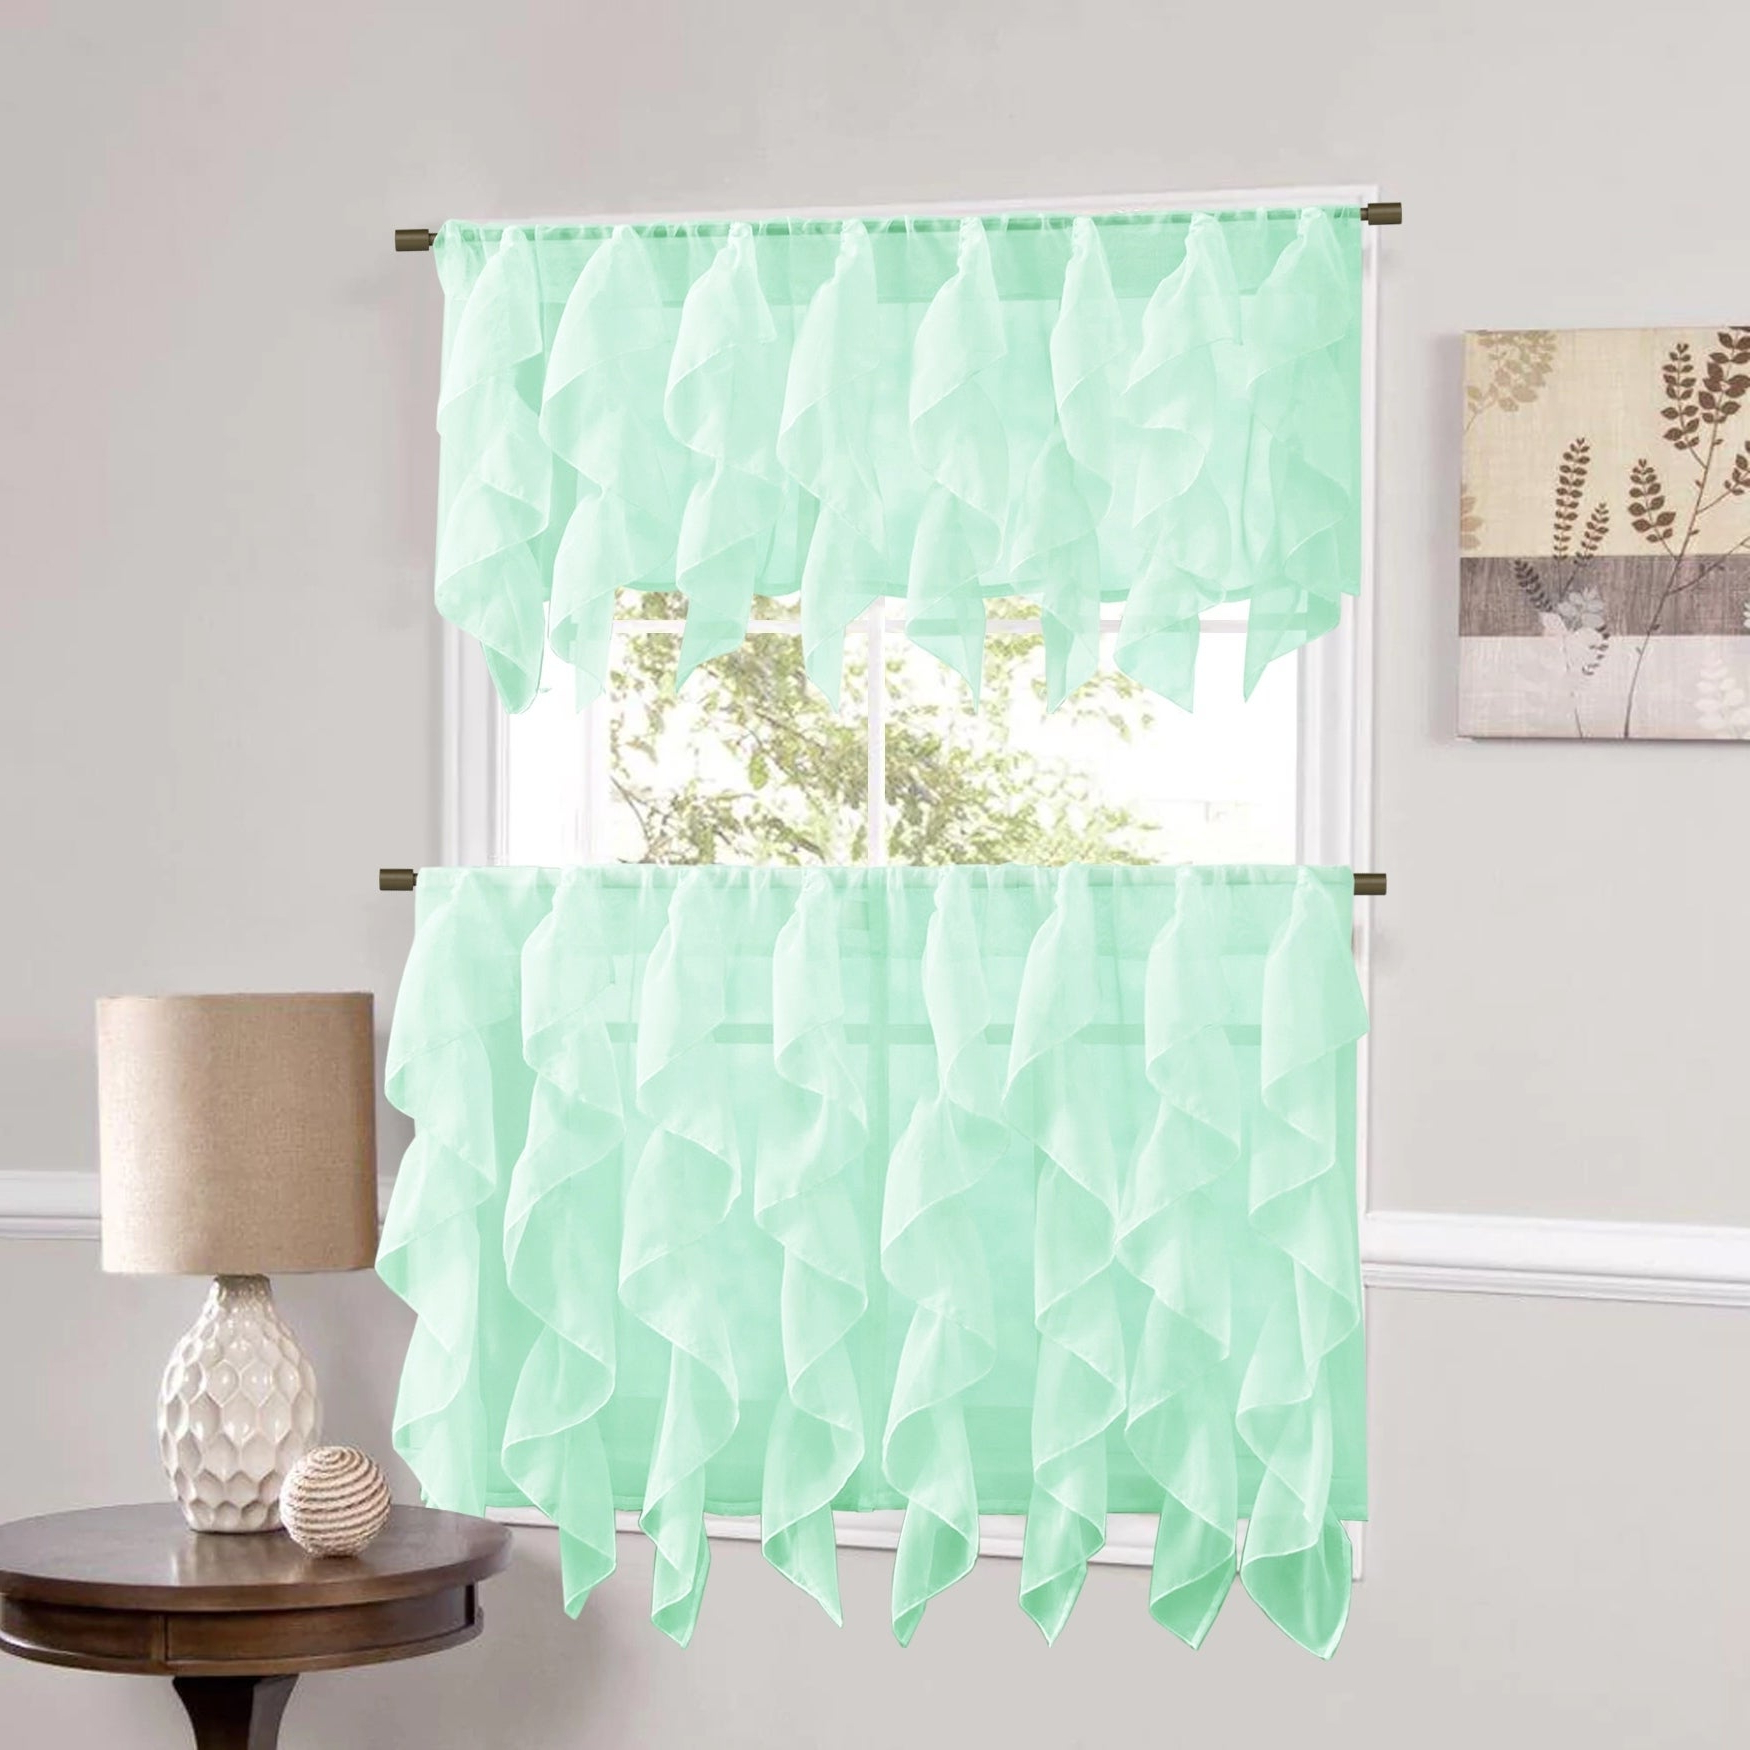 Sweet Home Collection Mint Vertical Ruffled Waterfall Valance And Curtain Tiers With Regard To Widely Used Vertical Ruffled Waterfall Valance And Curtain Tiers (View 3 of 20)